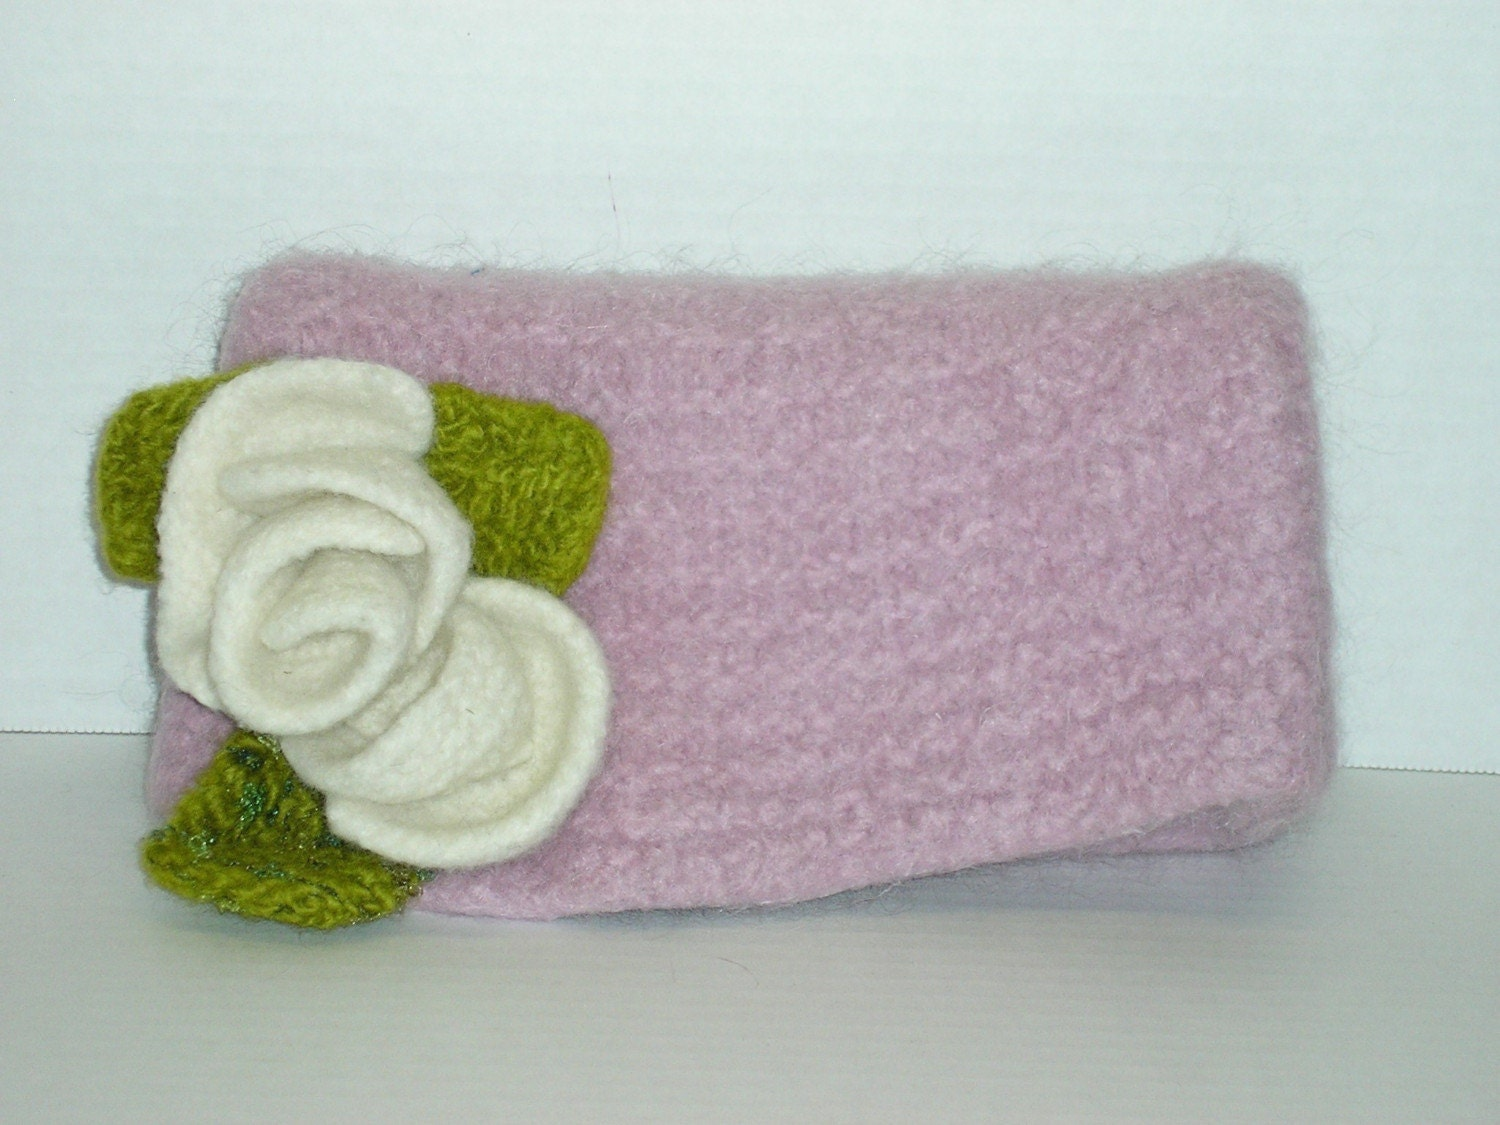 Felted Knitting Patterns Felted Clutch Bag Knitting Patterns